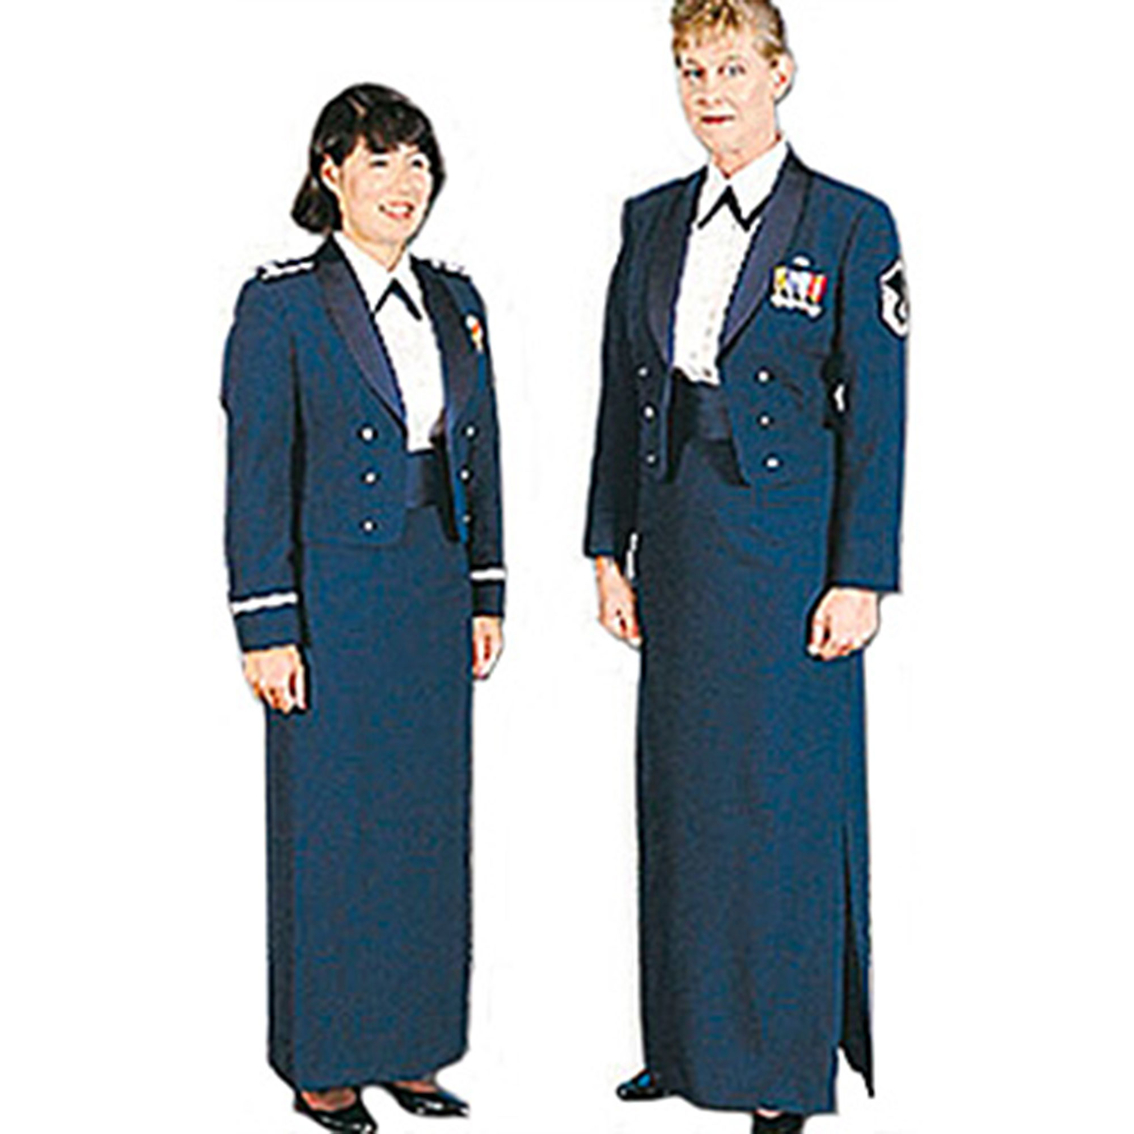 Perfect WRIGHTPATTERSON AIR  Forces Chief Of Staff Manpower, Personnel And Services Logistics, Engineering And Force Protection And Combatant Commanders Through The Years The Office Has Designed Mens And Womens Service Dress